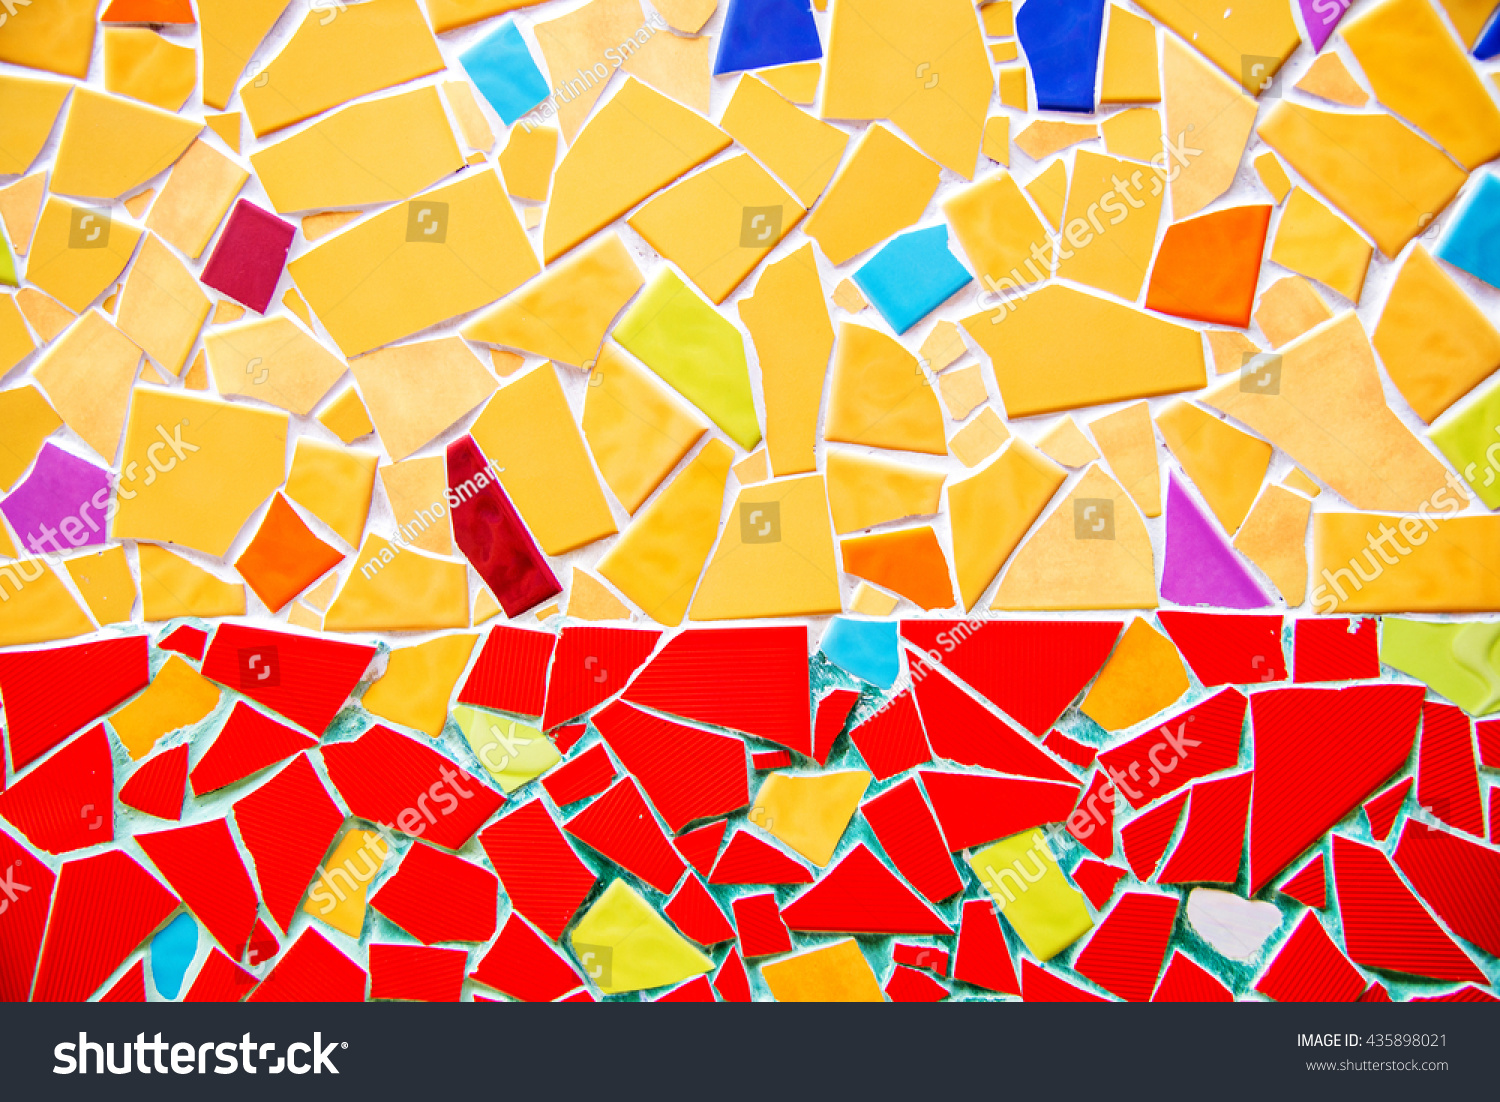 Colorful Glass Mosaic Art Abstract Wall Stock Photo 435898021 ...